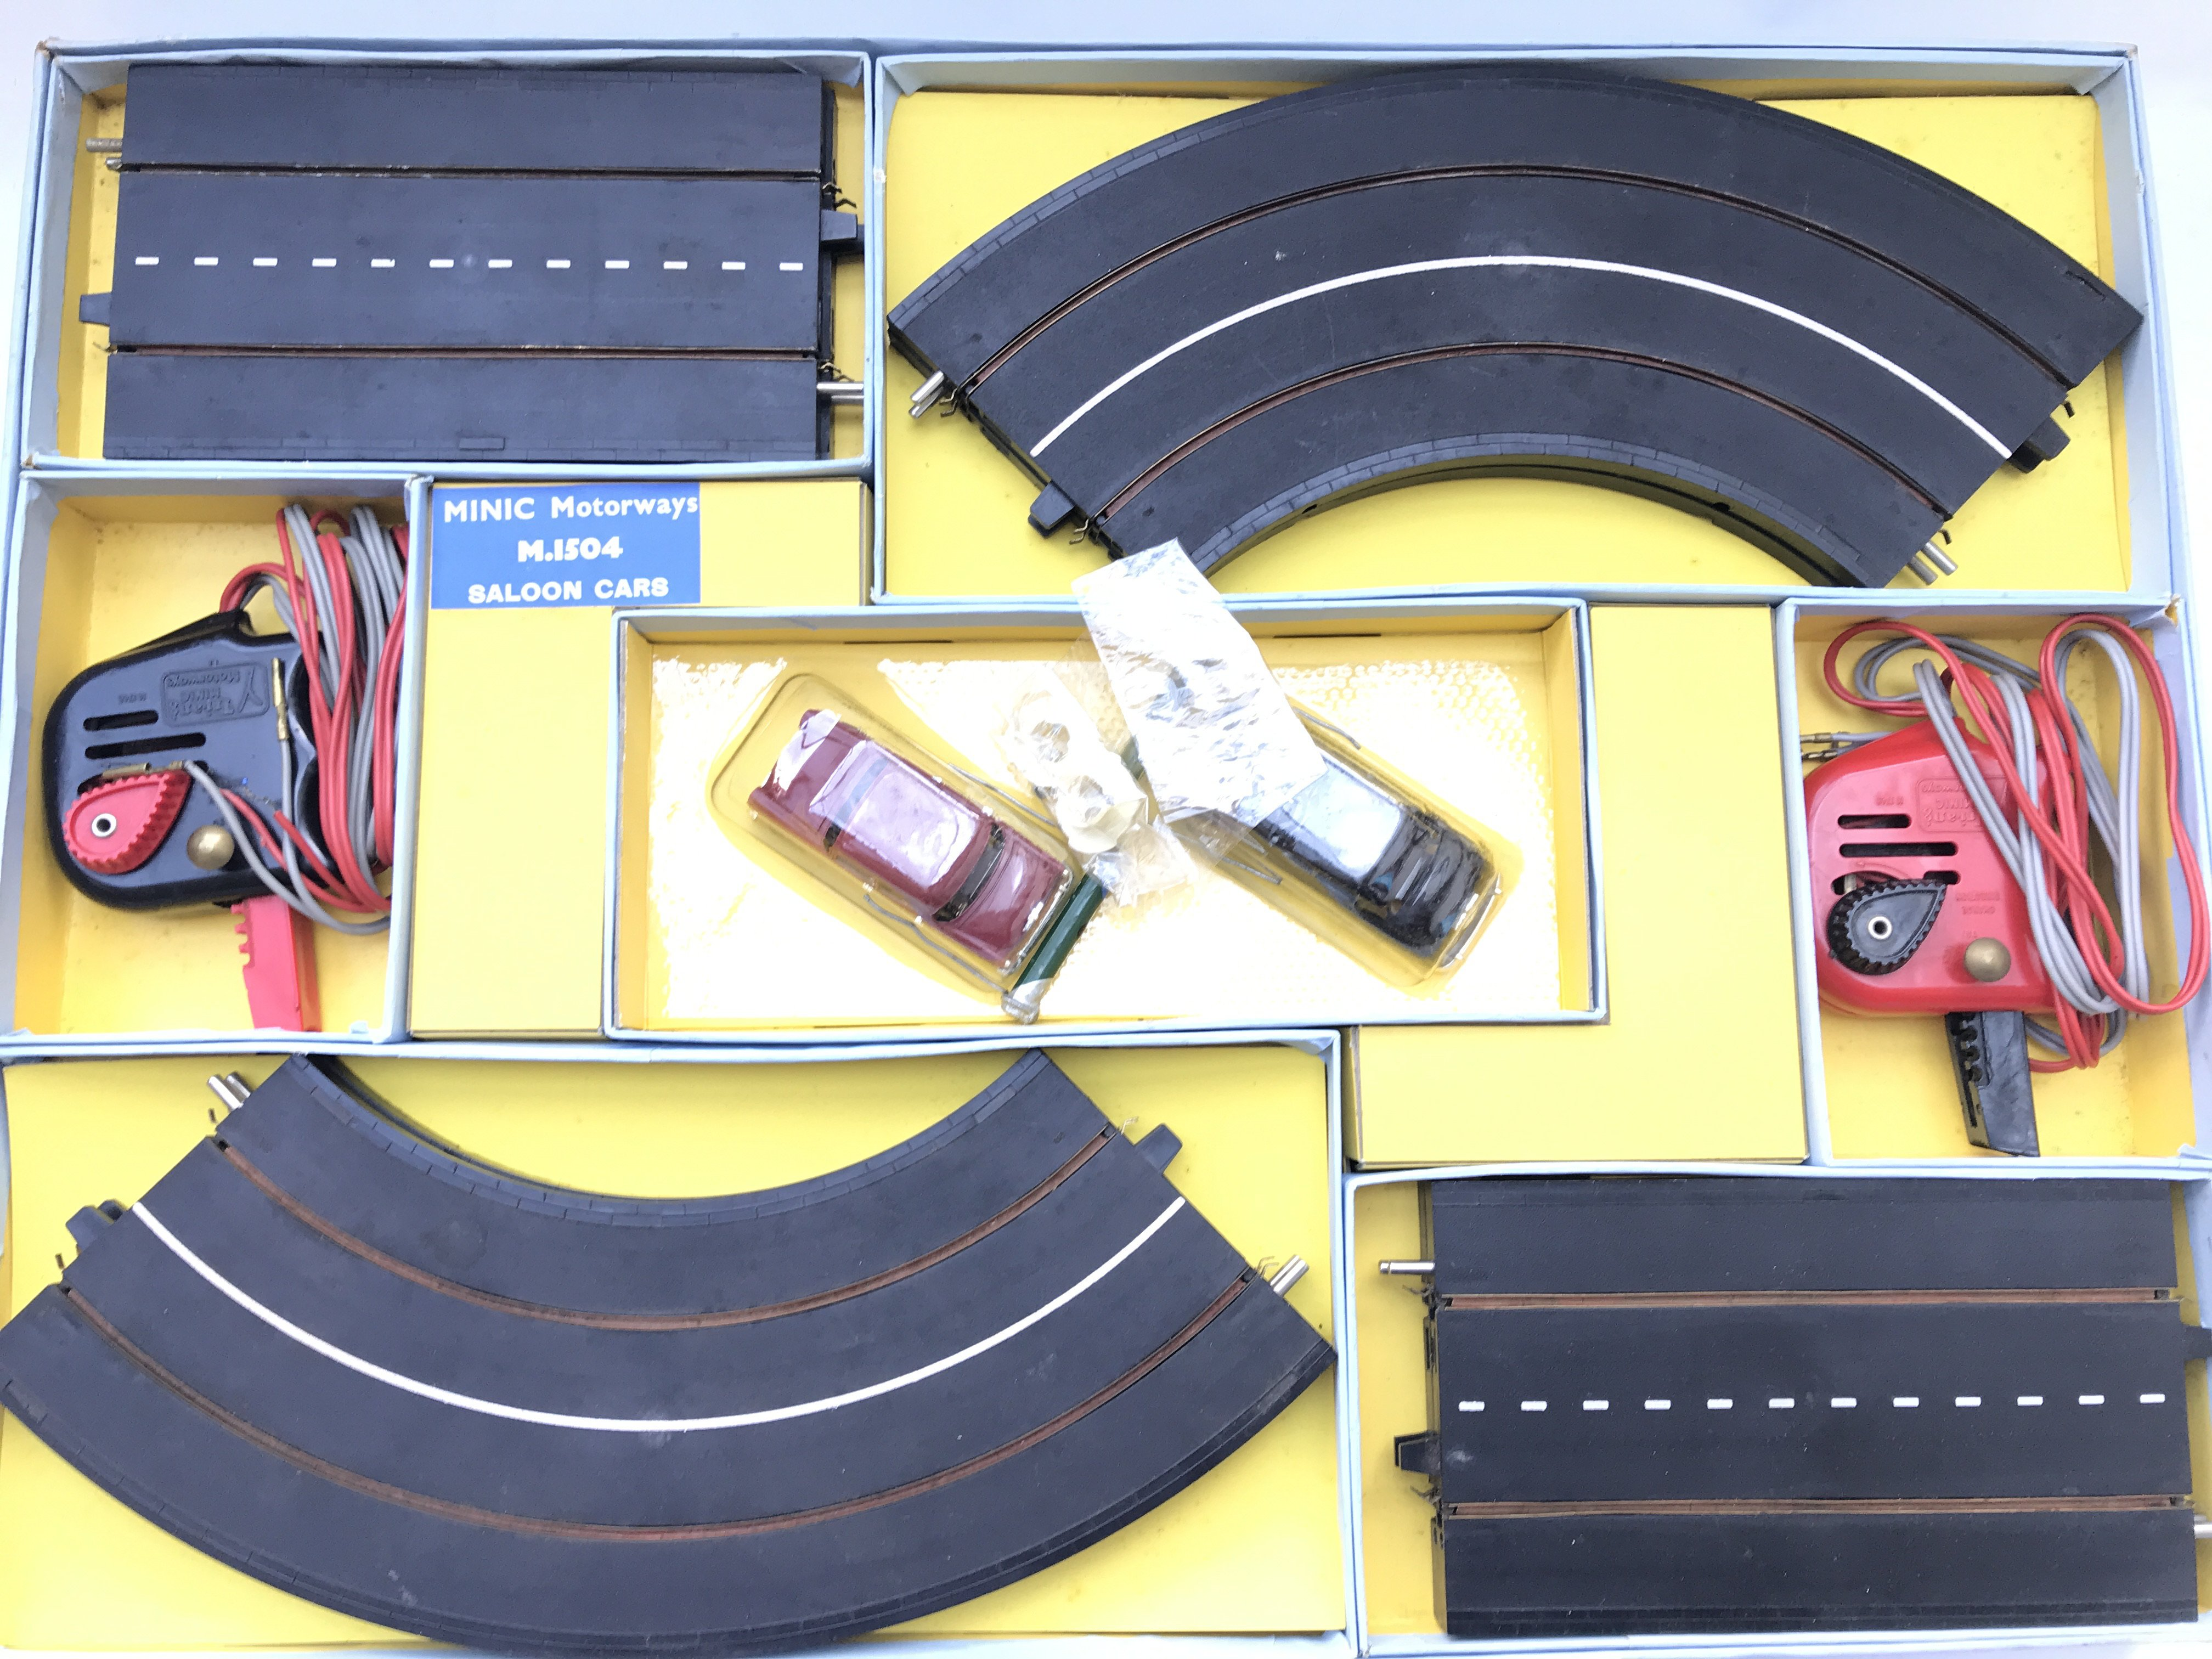 A Boxed Tri-ang Minic Motorways Set #M.1504. - Image 2 of 2